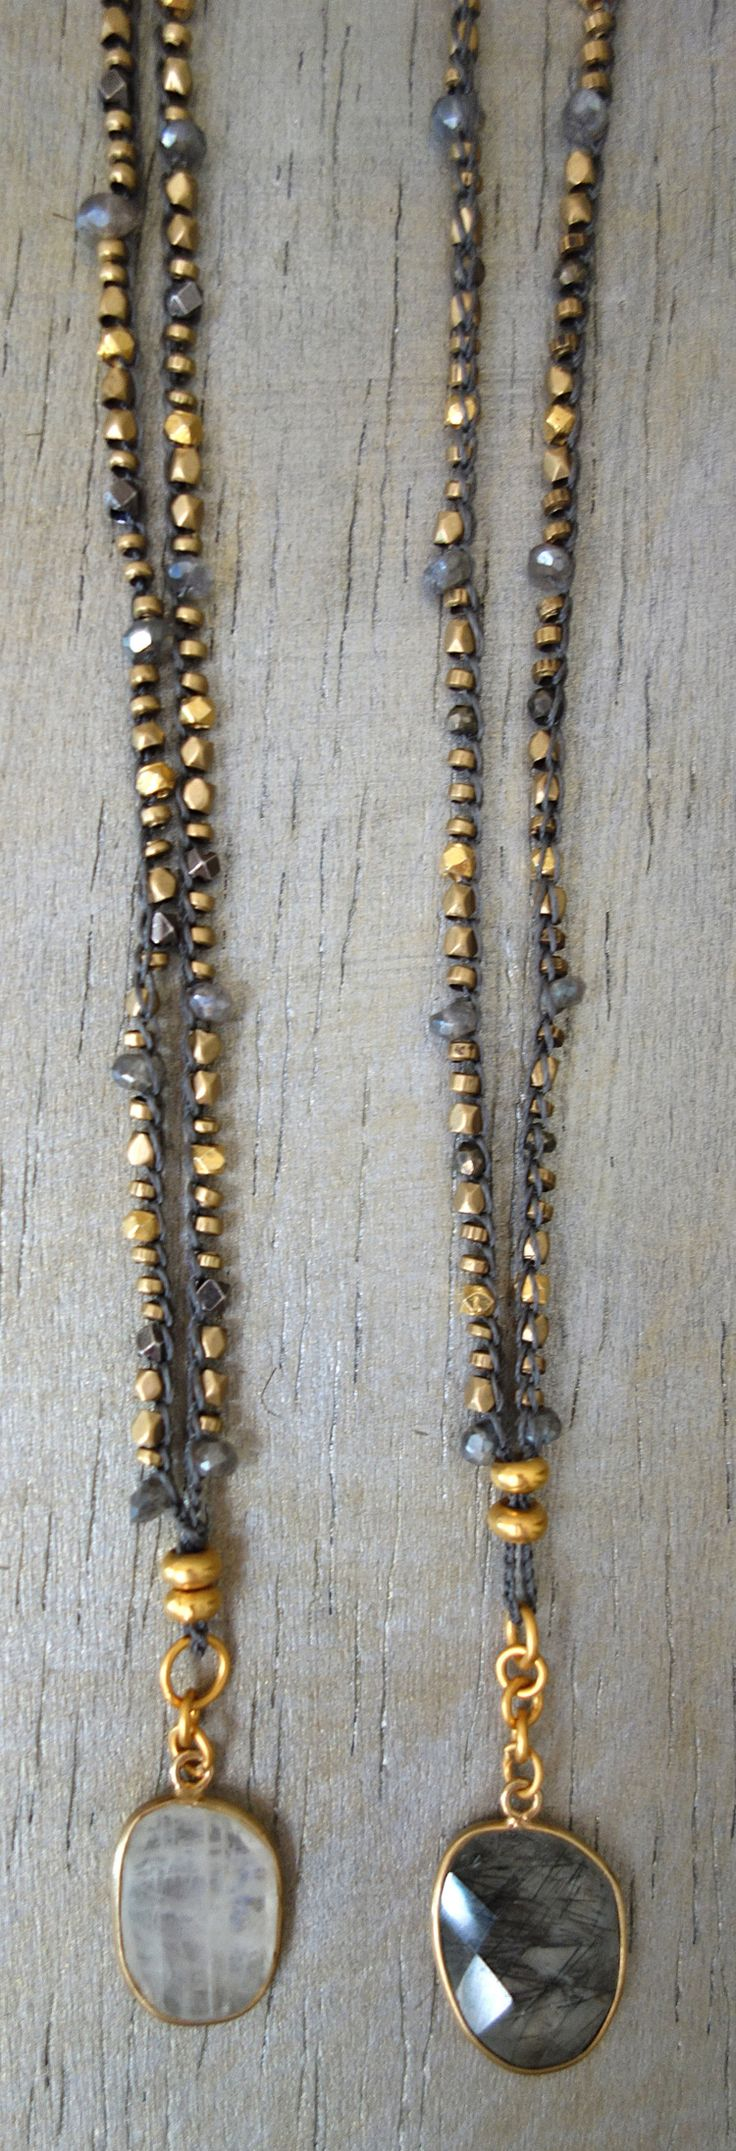 best jewelry images on pinterest beads jewelry and diy bracelet